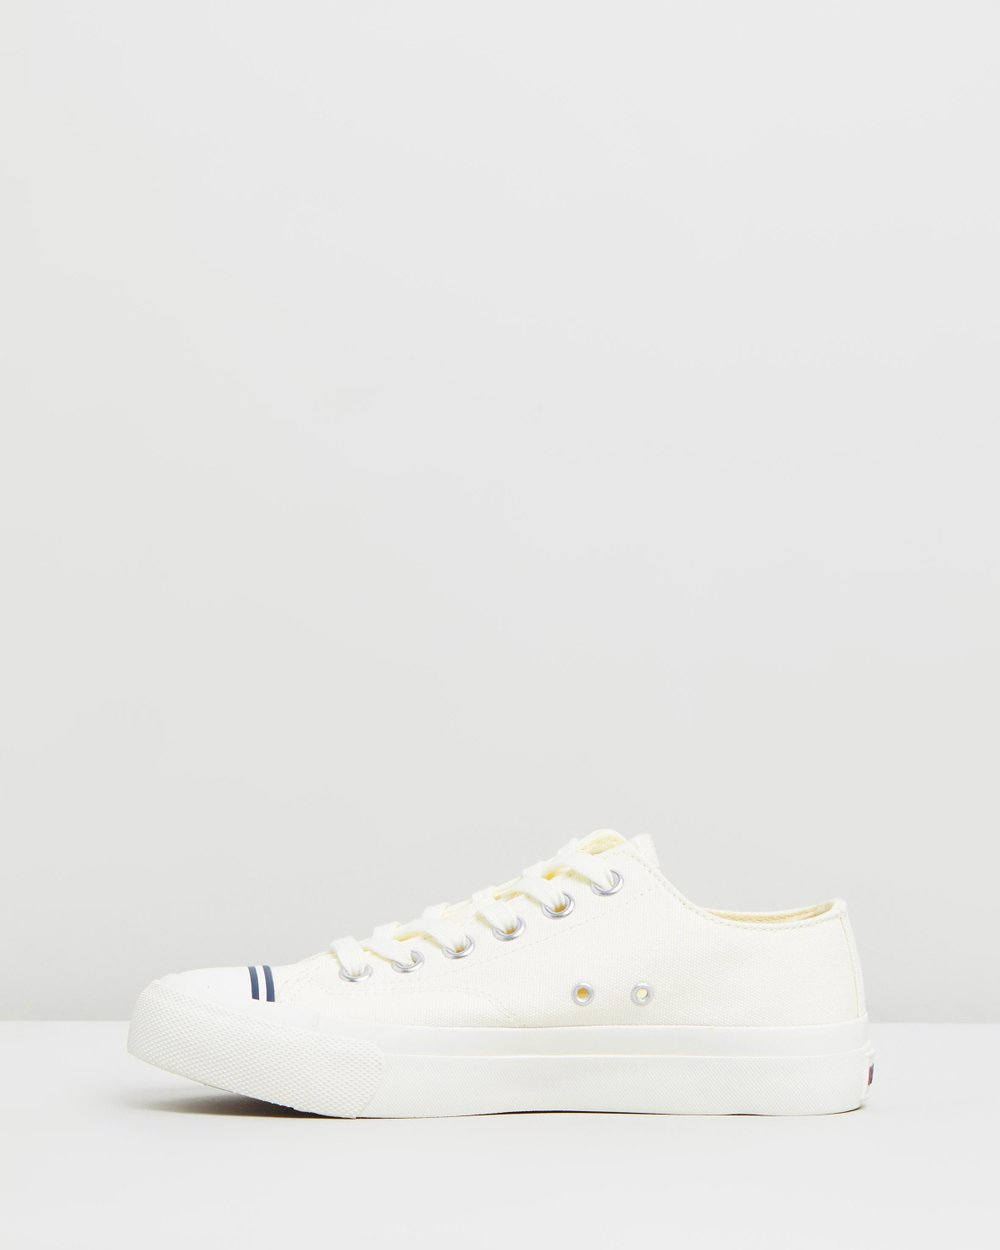 255bfb344f19e Royal Lo Classic - unisex by Pro-Keds Online